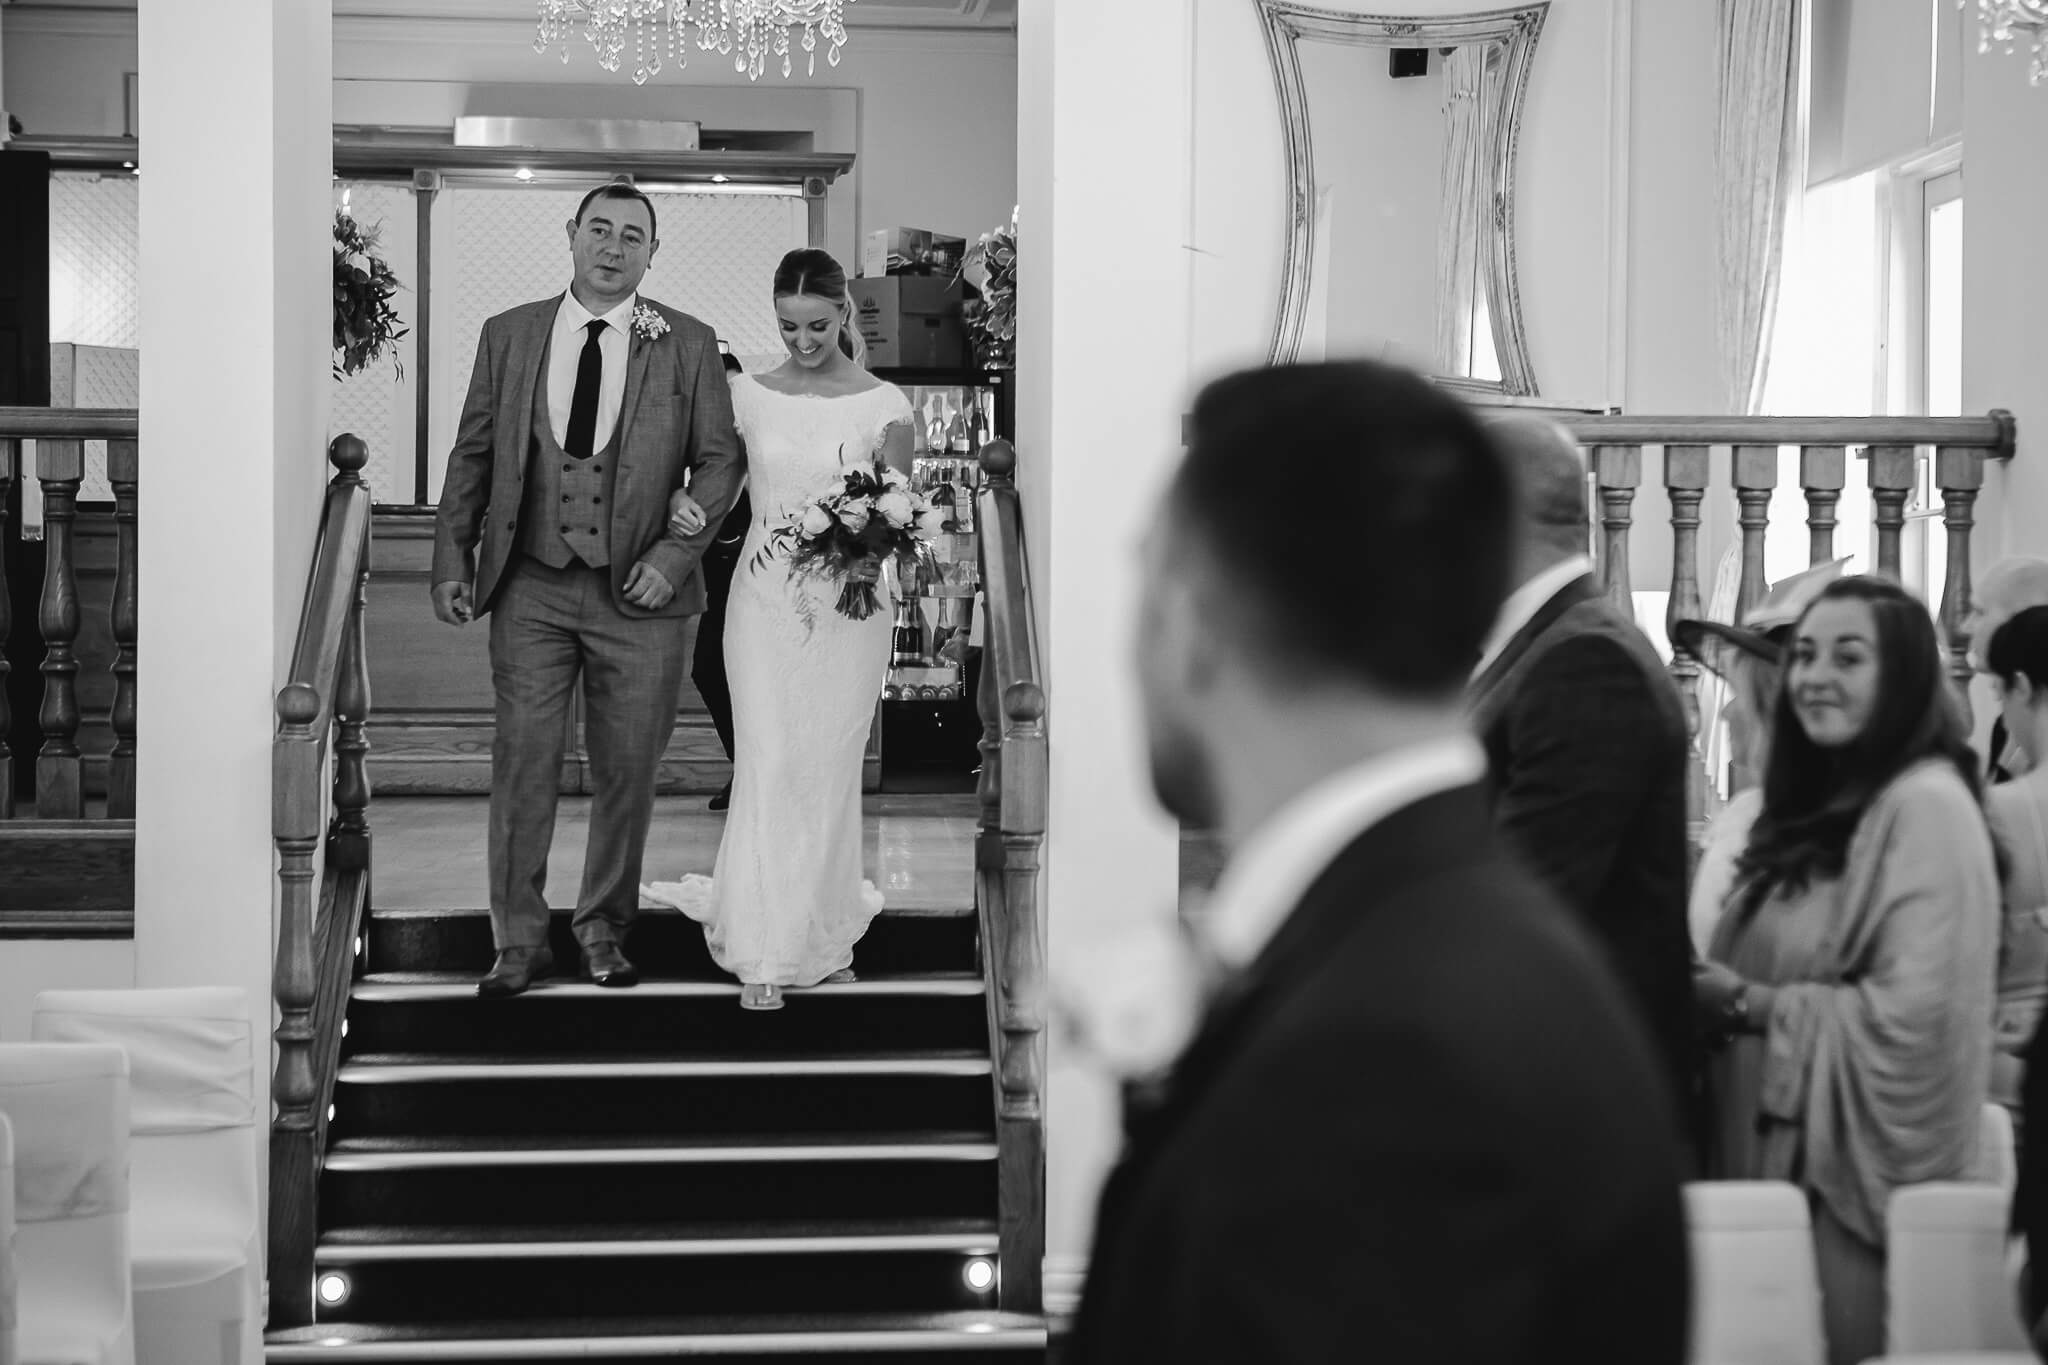 best-wedding-photographers-uk-europe-stanbury-photography-051